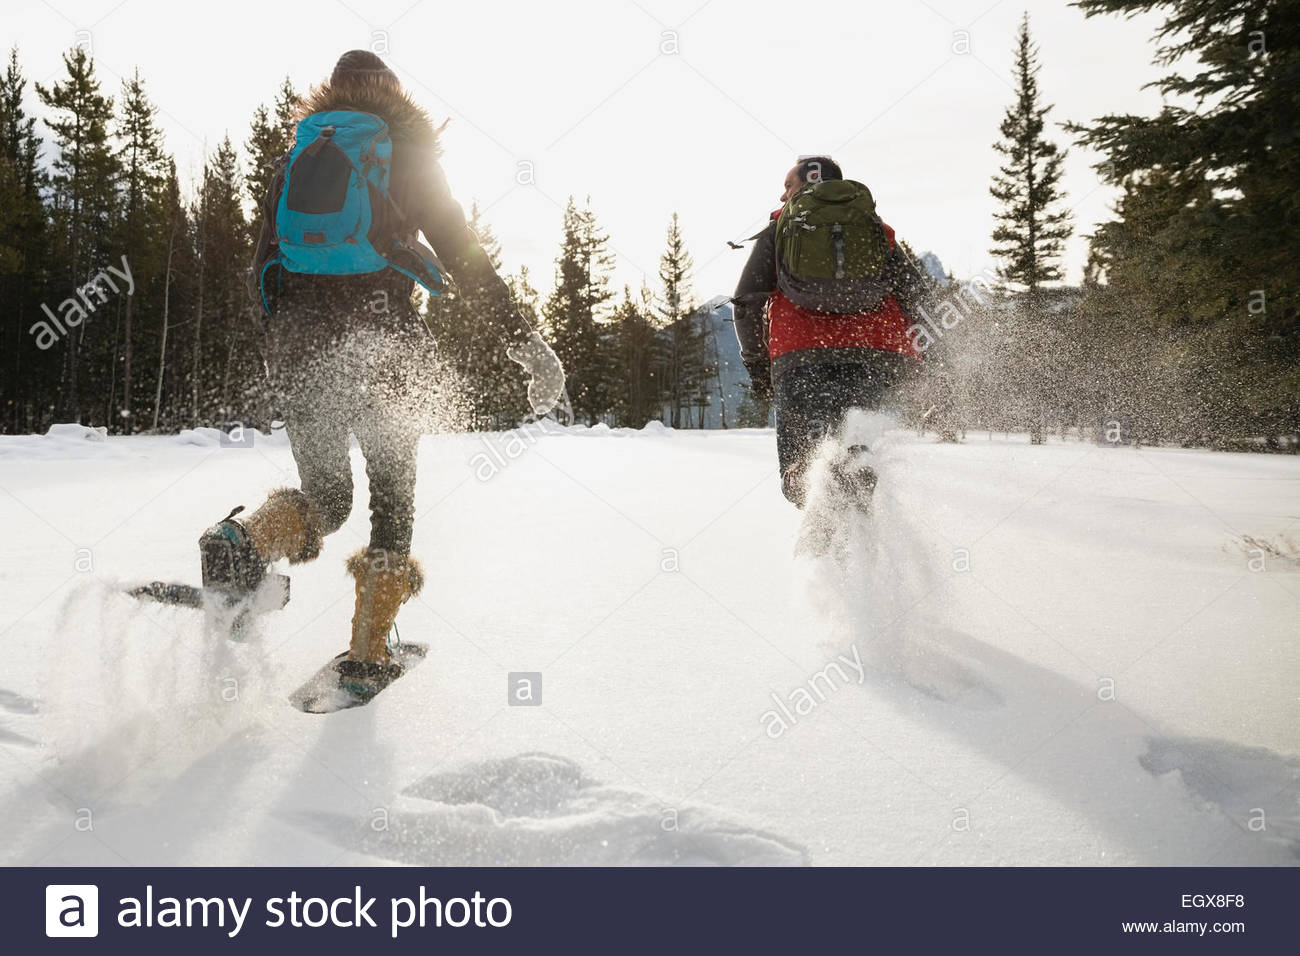 Friends running in snowshoes in snowy field - Stock Image